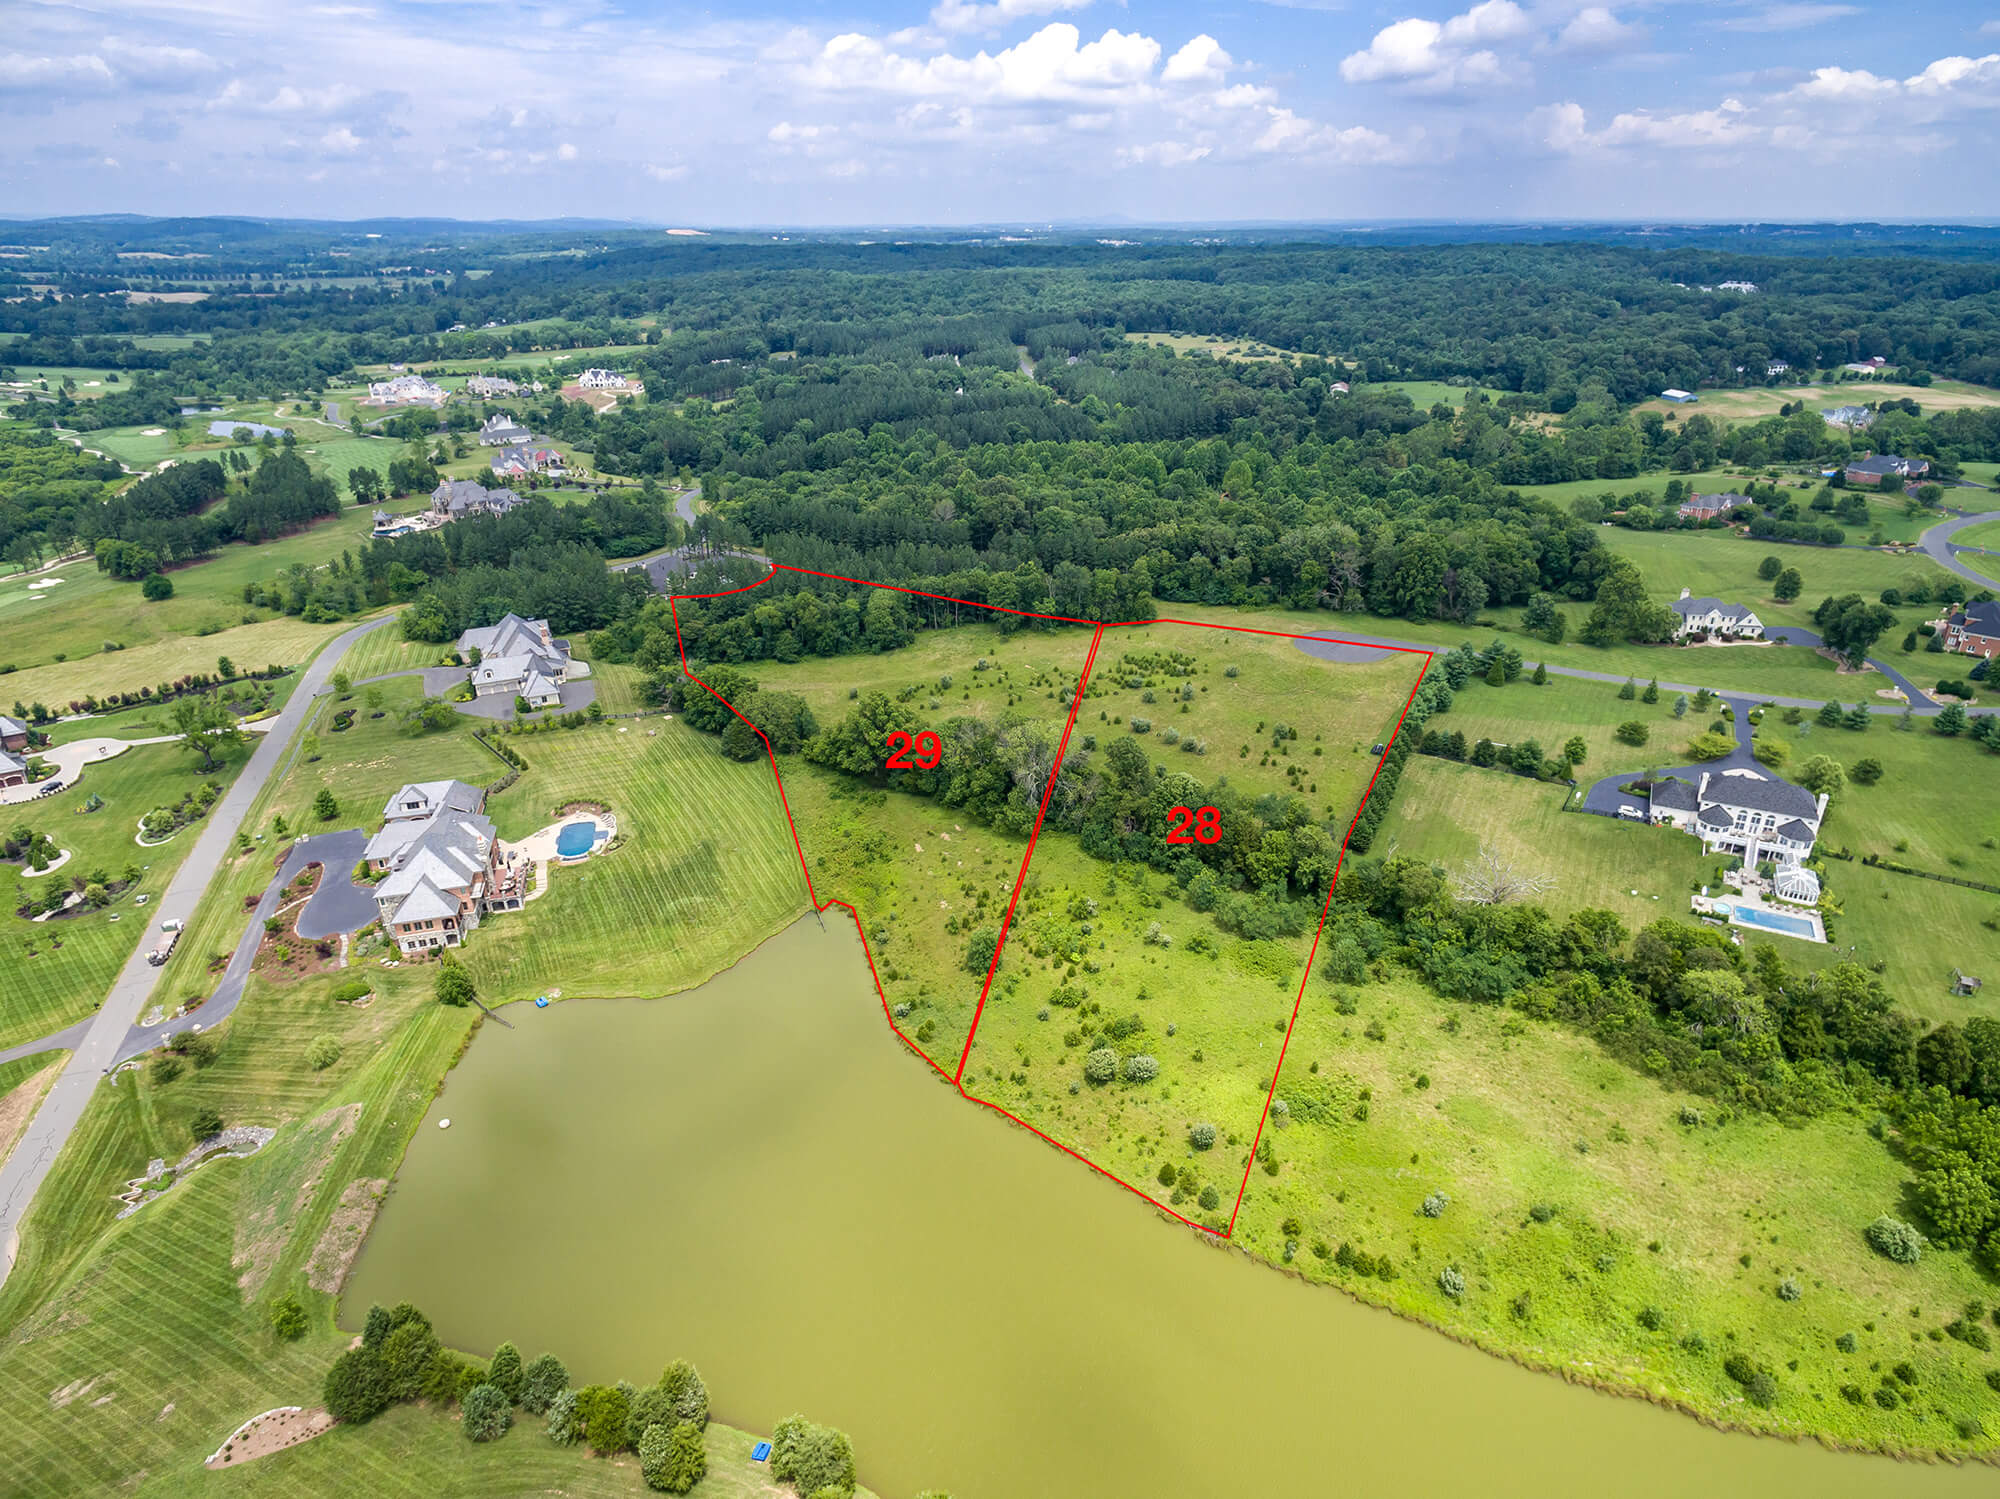 Lot 29 Leesburg Va Creighton Farms Jack Nicklaus